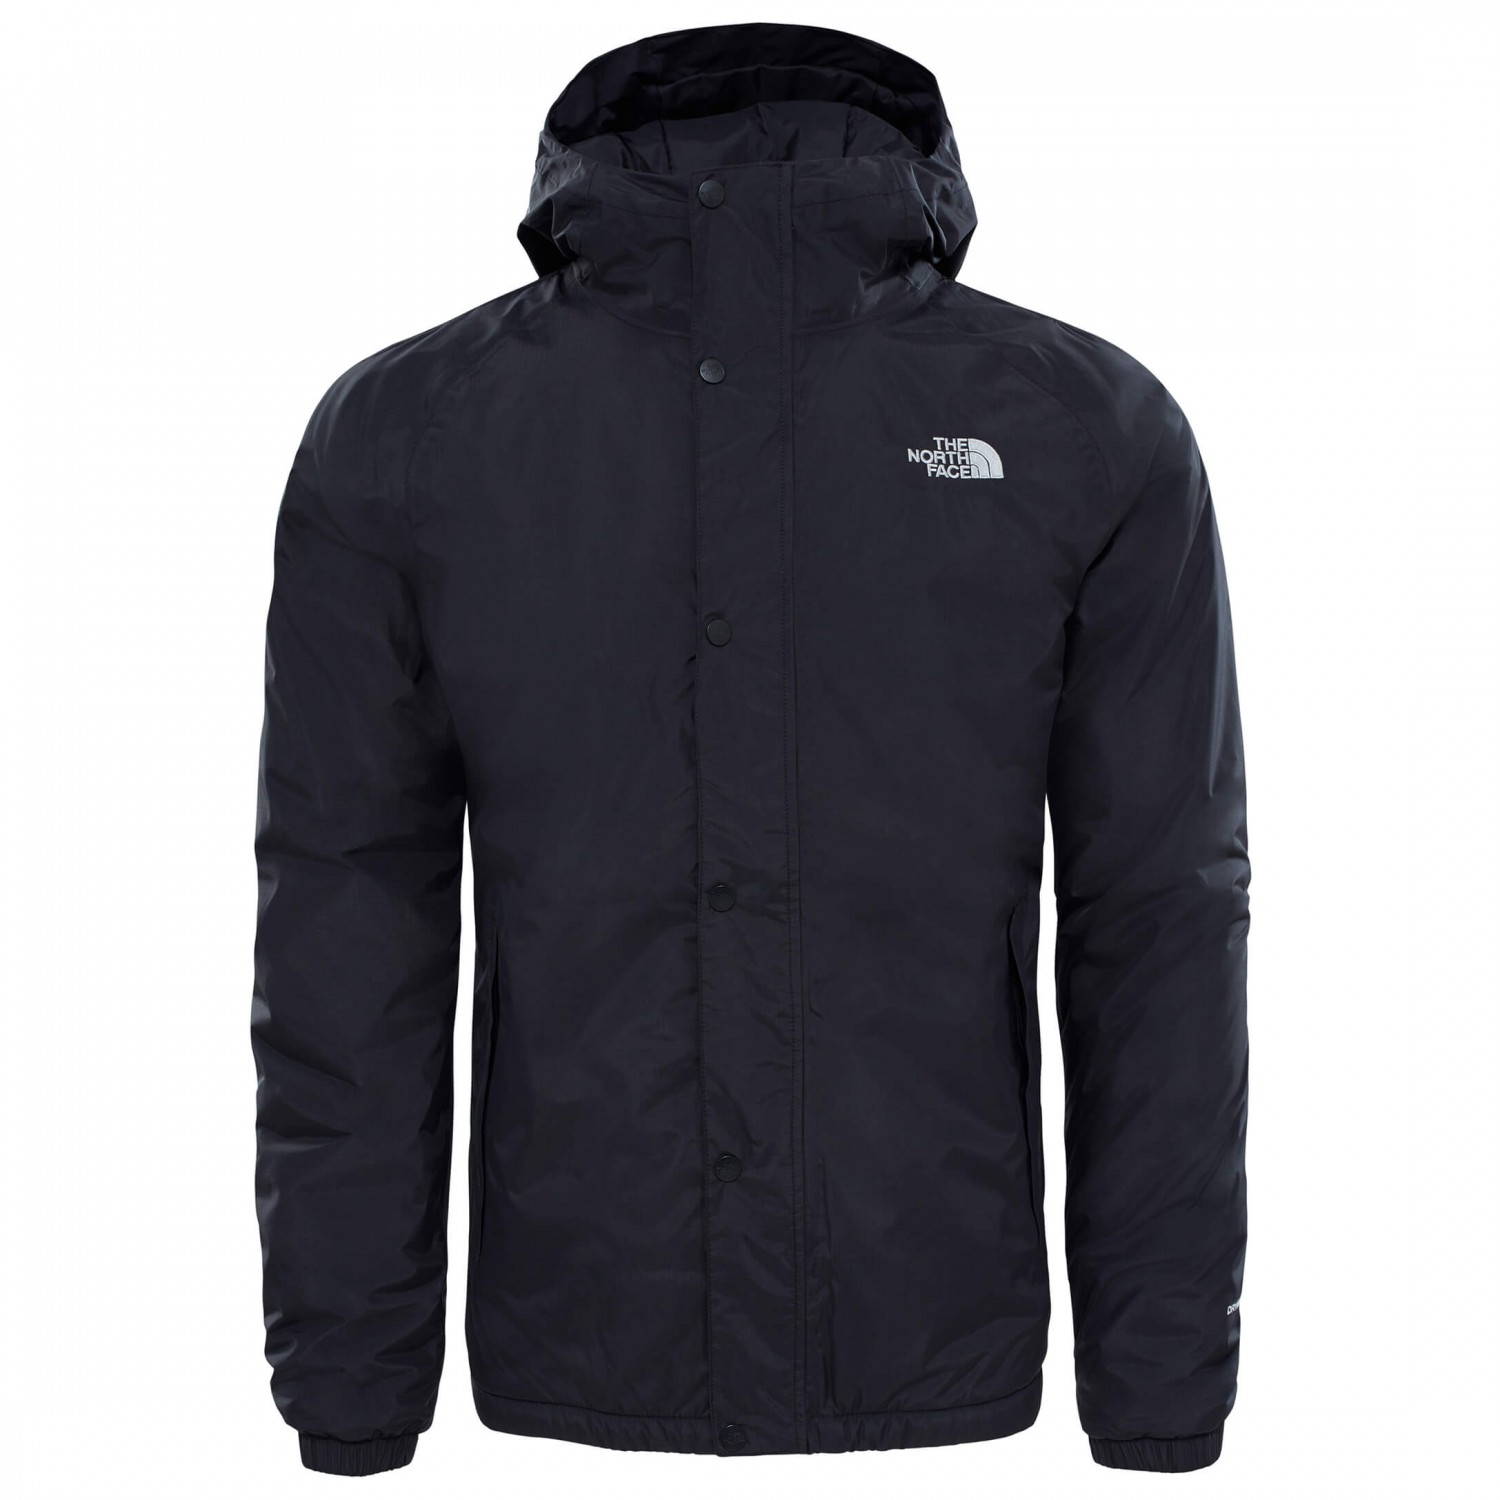 The North Face Berkeley Insulated Jacket Winter Jacket